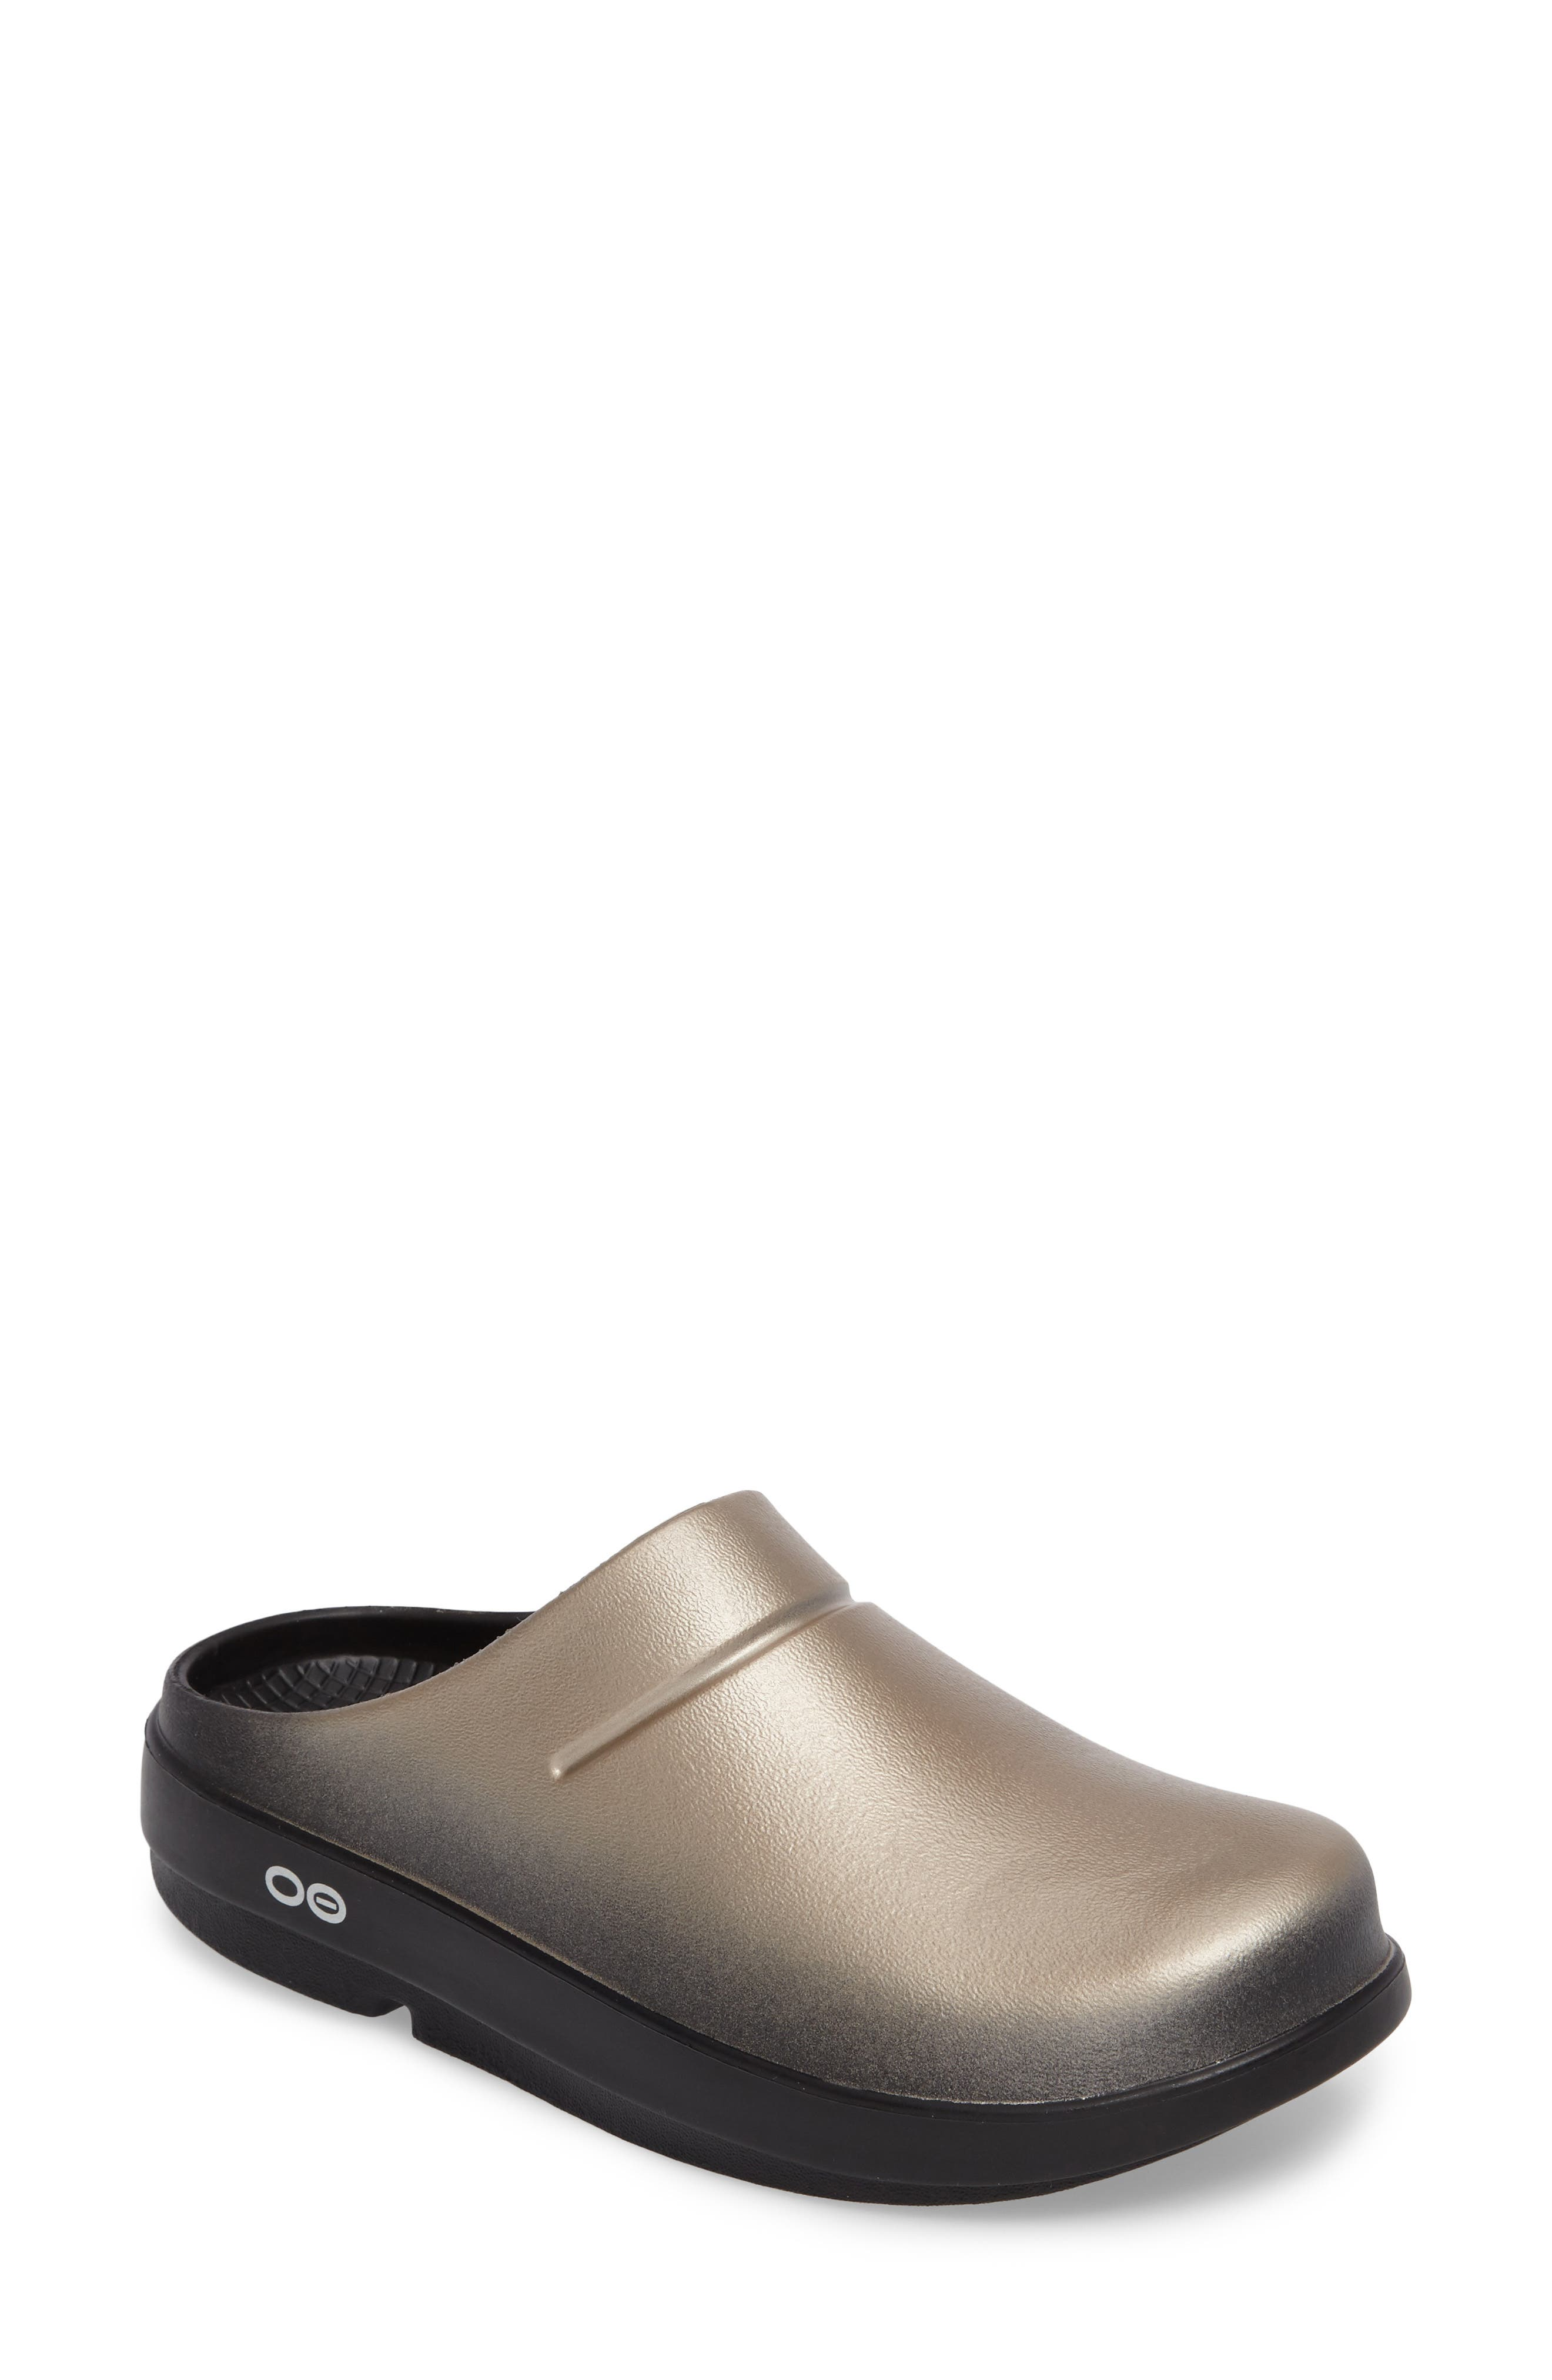 OOcloog Luxe Clog,                         Main,                         color, Latte